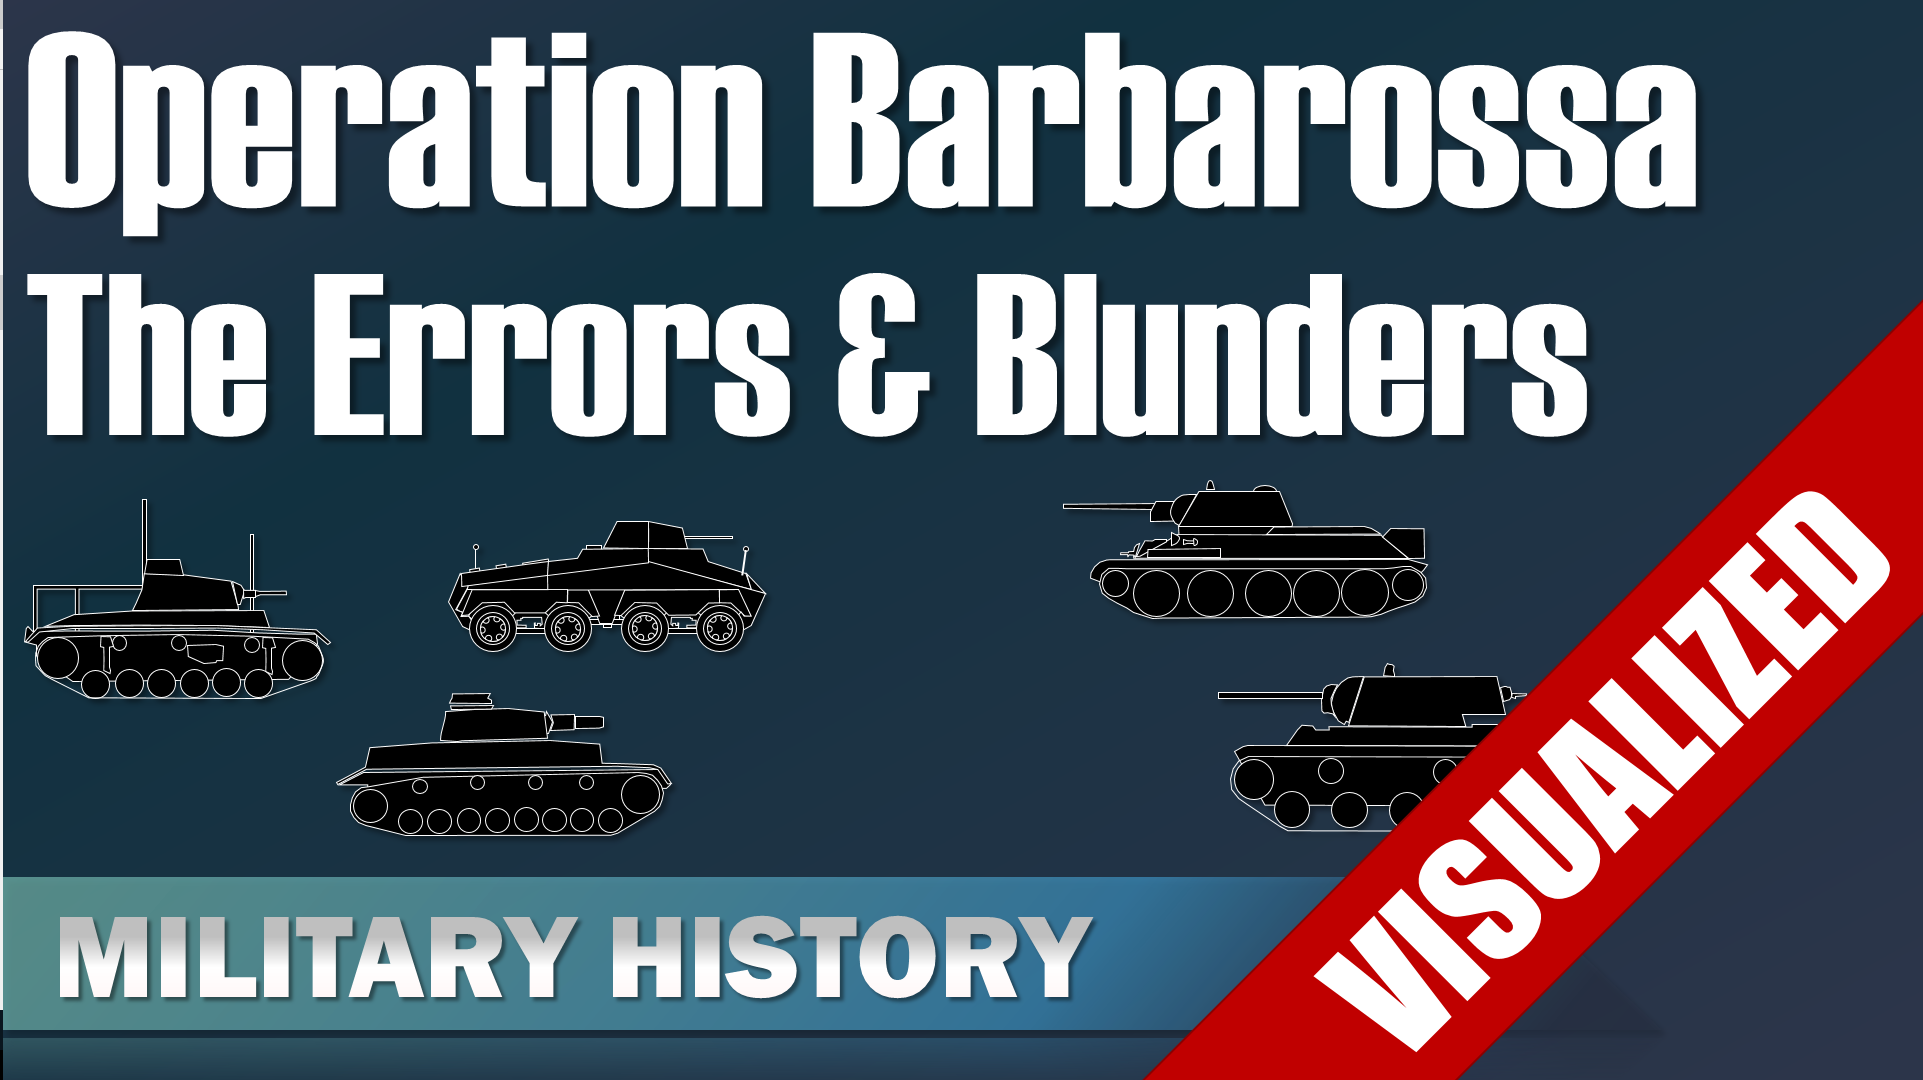 Operation Barbarossa – The Major Errors and Blunders